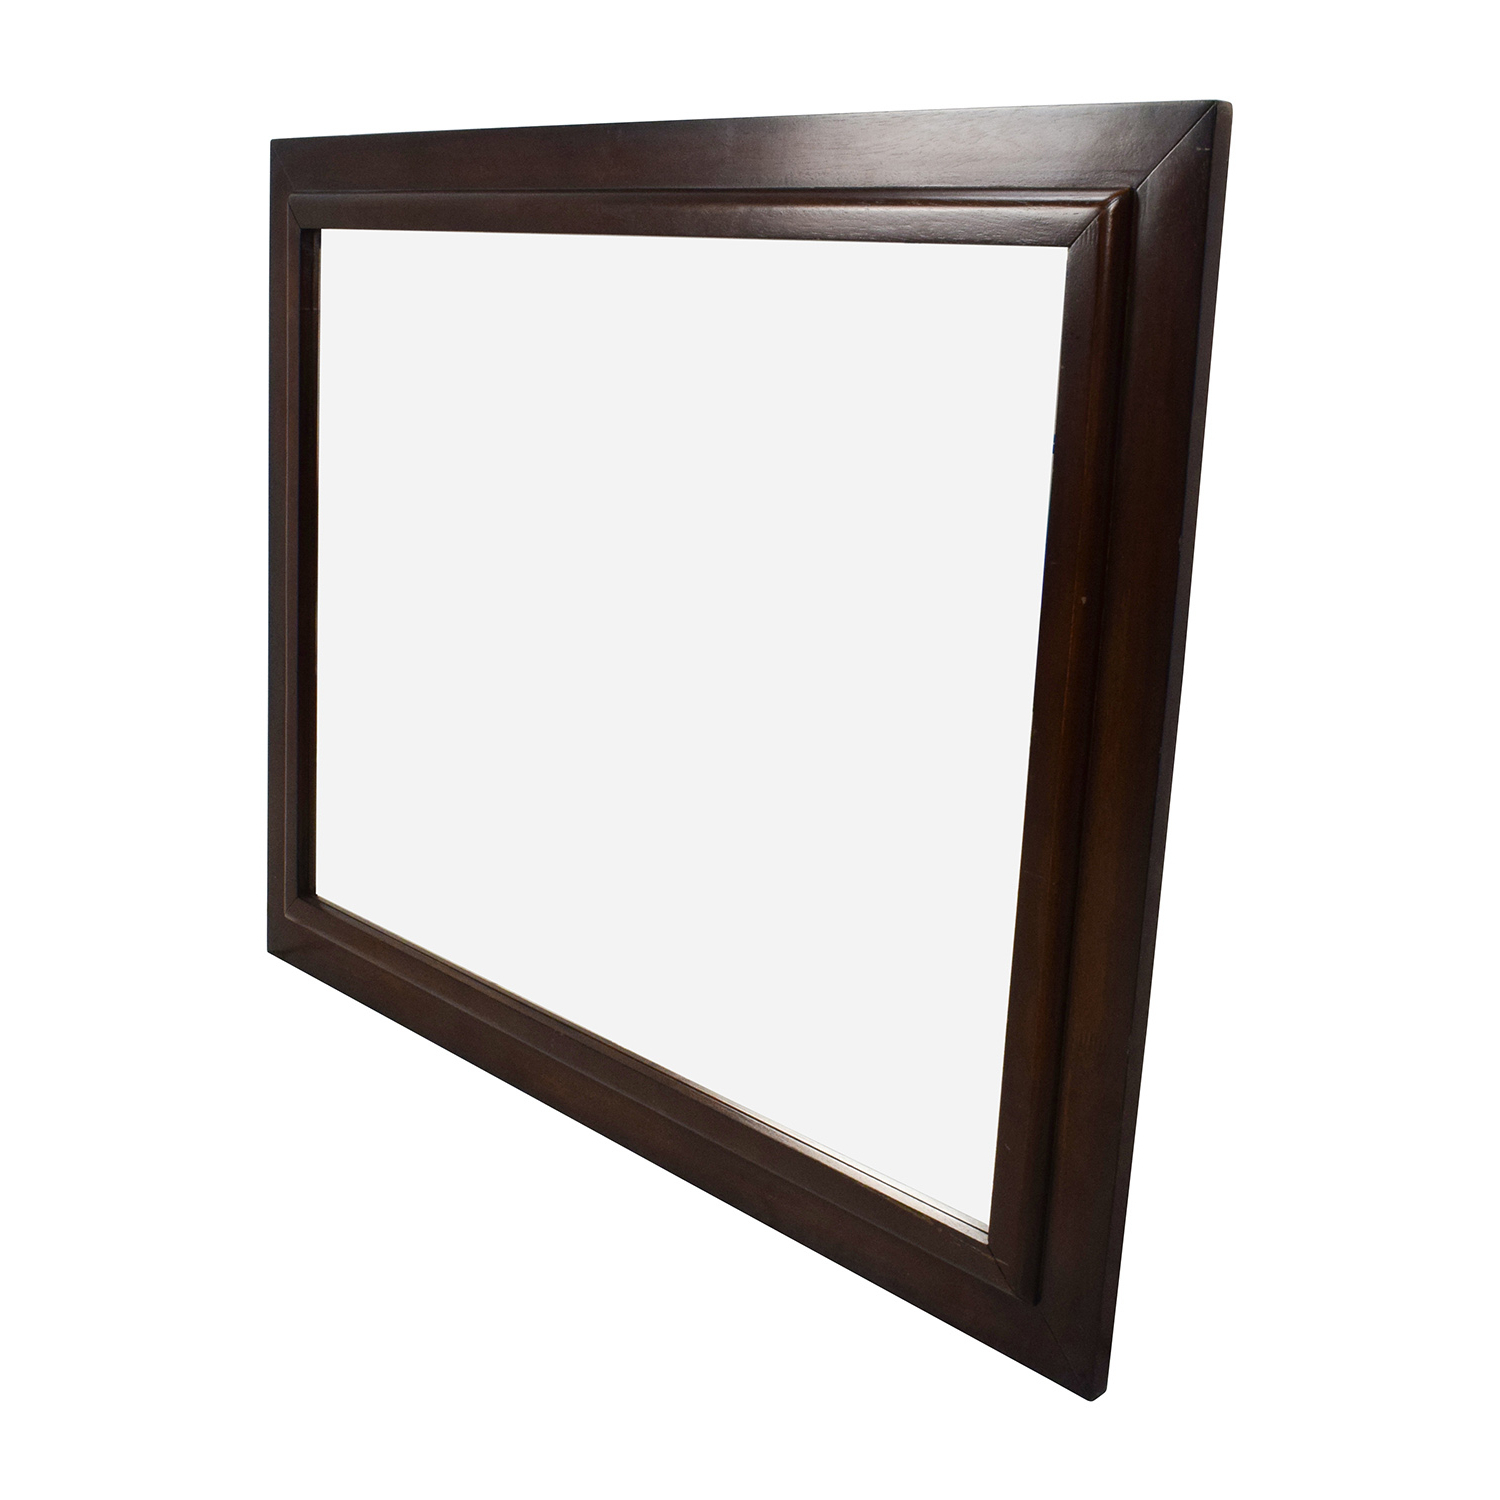 [%80% Off – Large Square Wood Framed Wall Mirror / Decor With Famous Brown Wall Mirrors brown Wall Mirrors Inside 2019 80% Off – Large Square Wood Framed Wall Mirror / Decor well Known Brown Wall Mirrors Within 80% Off – Large Square Wood Framed Wall Mirror / Decor latest 80% Off – Large Square Wood Framed Wall Mirror / Decor Within Brown Wall Mirrors%] (View 8 of 20)